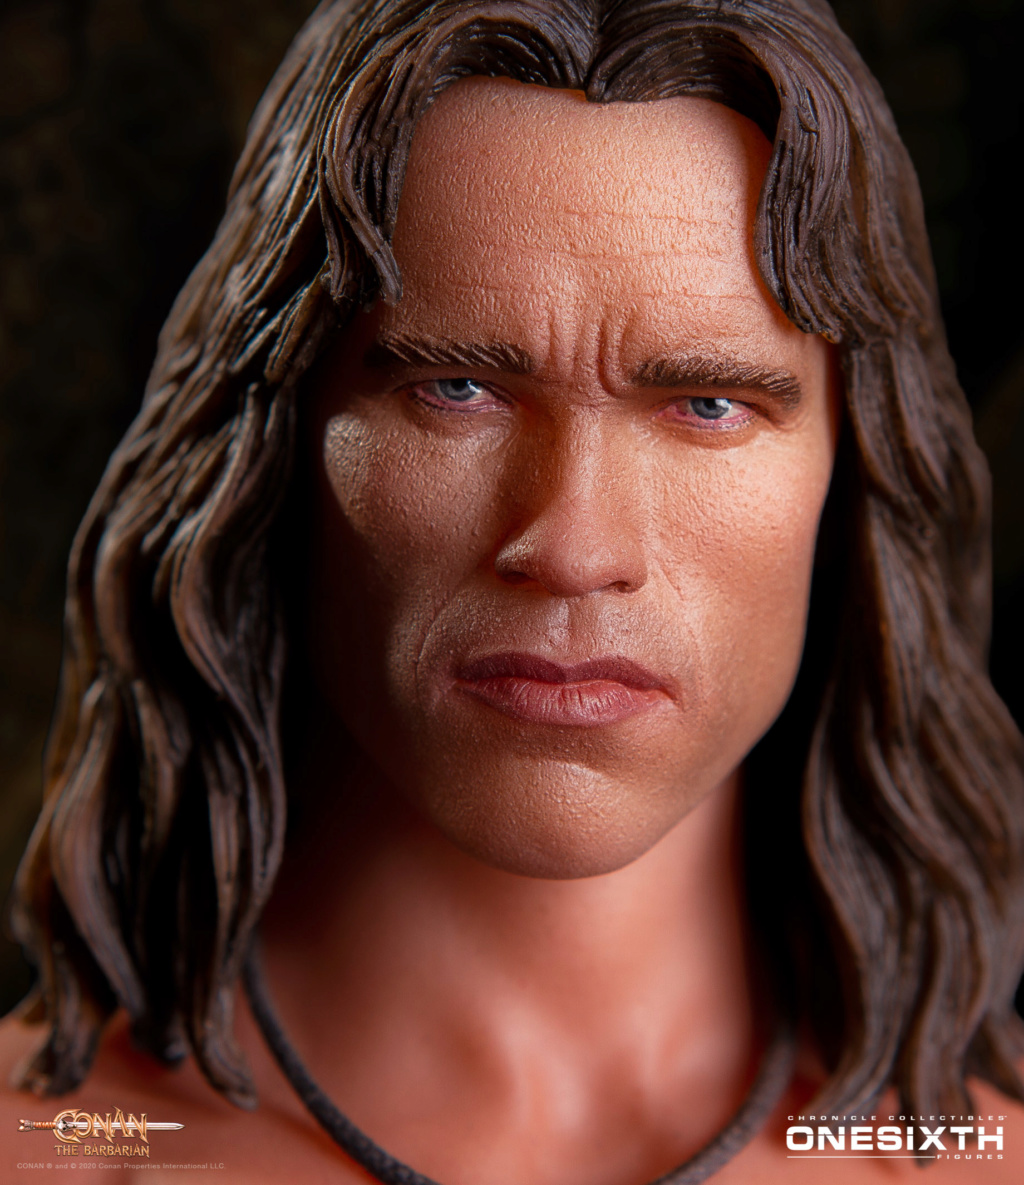 NEW PRODUCT: Chronicle Collectibles: OneSixth Conan the Barbarian Figure Chroni20